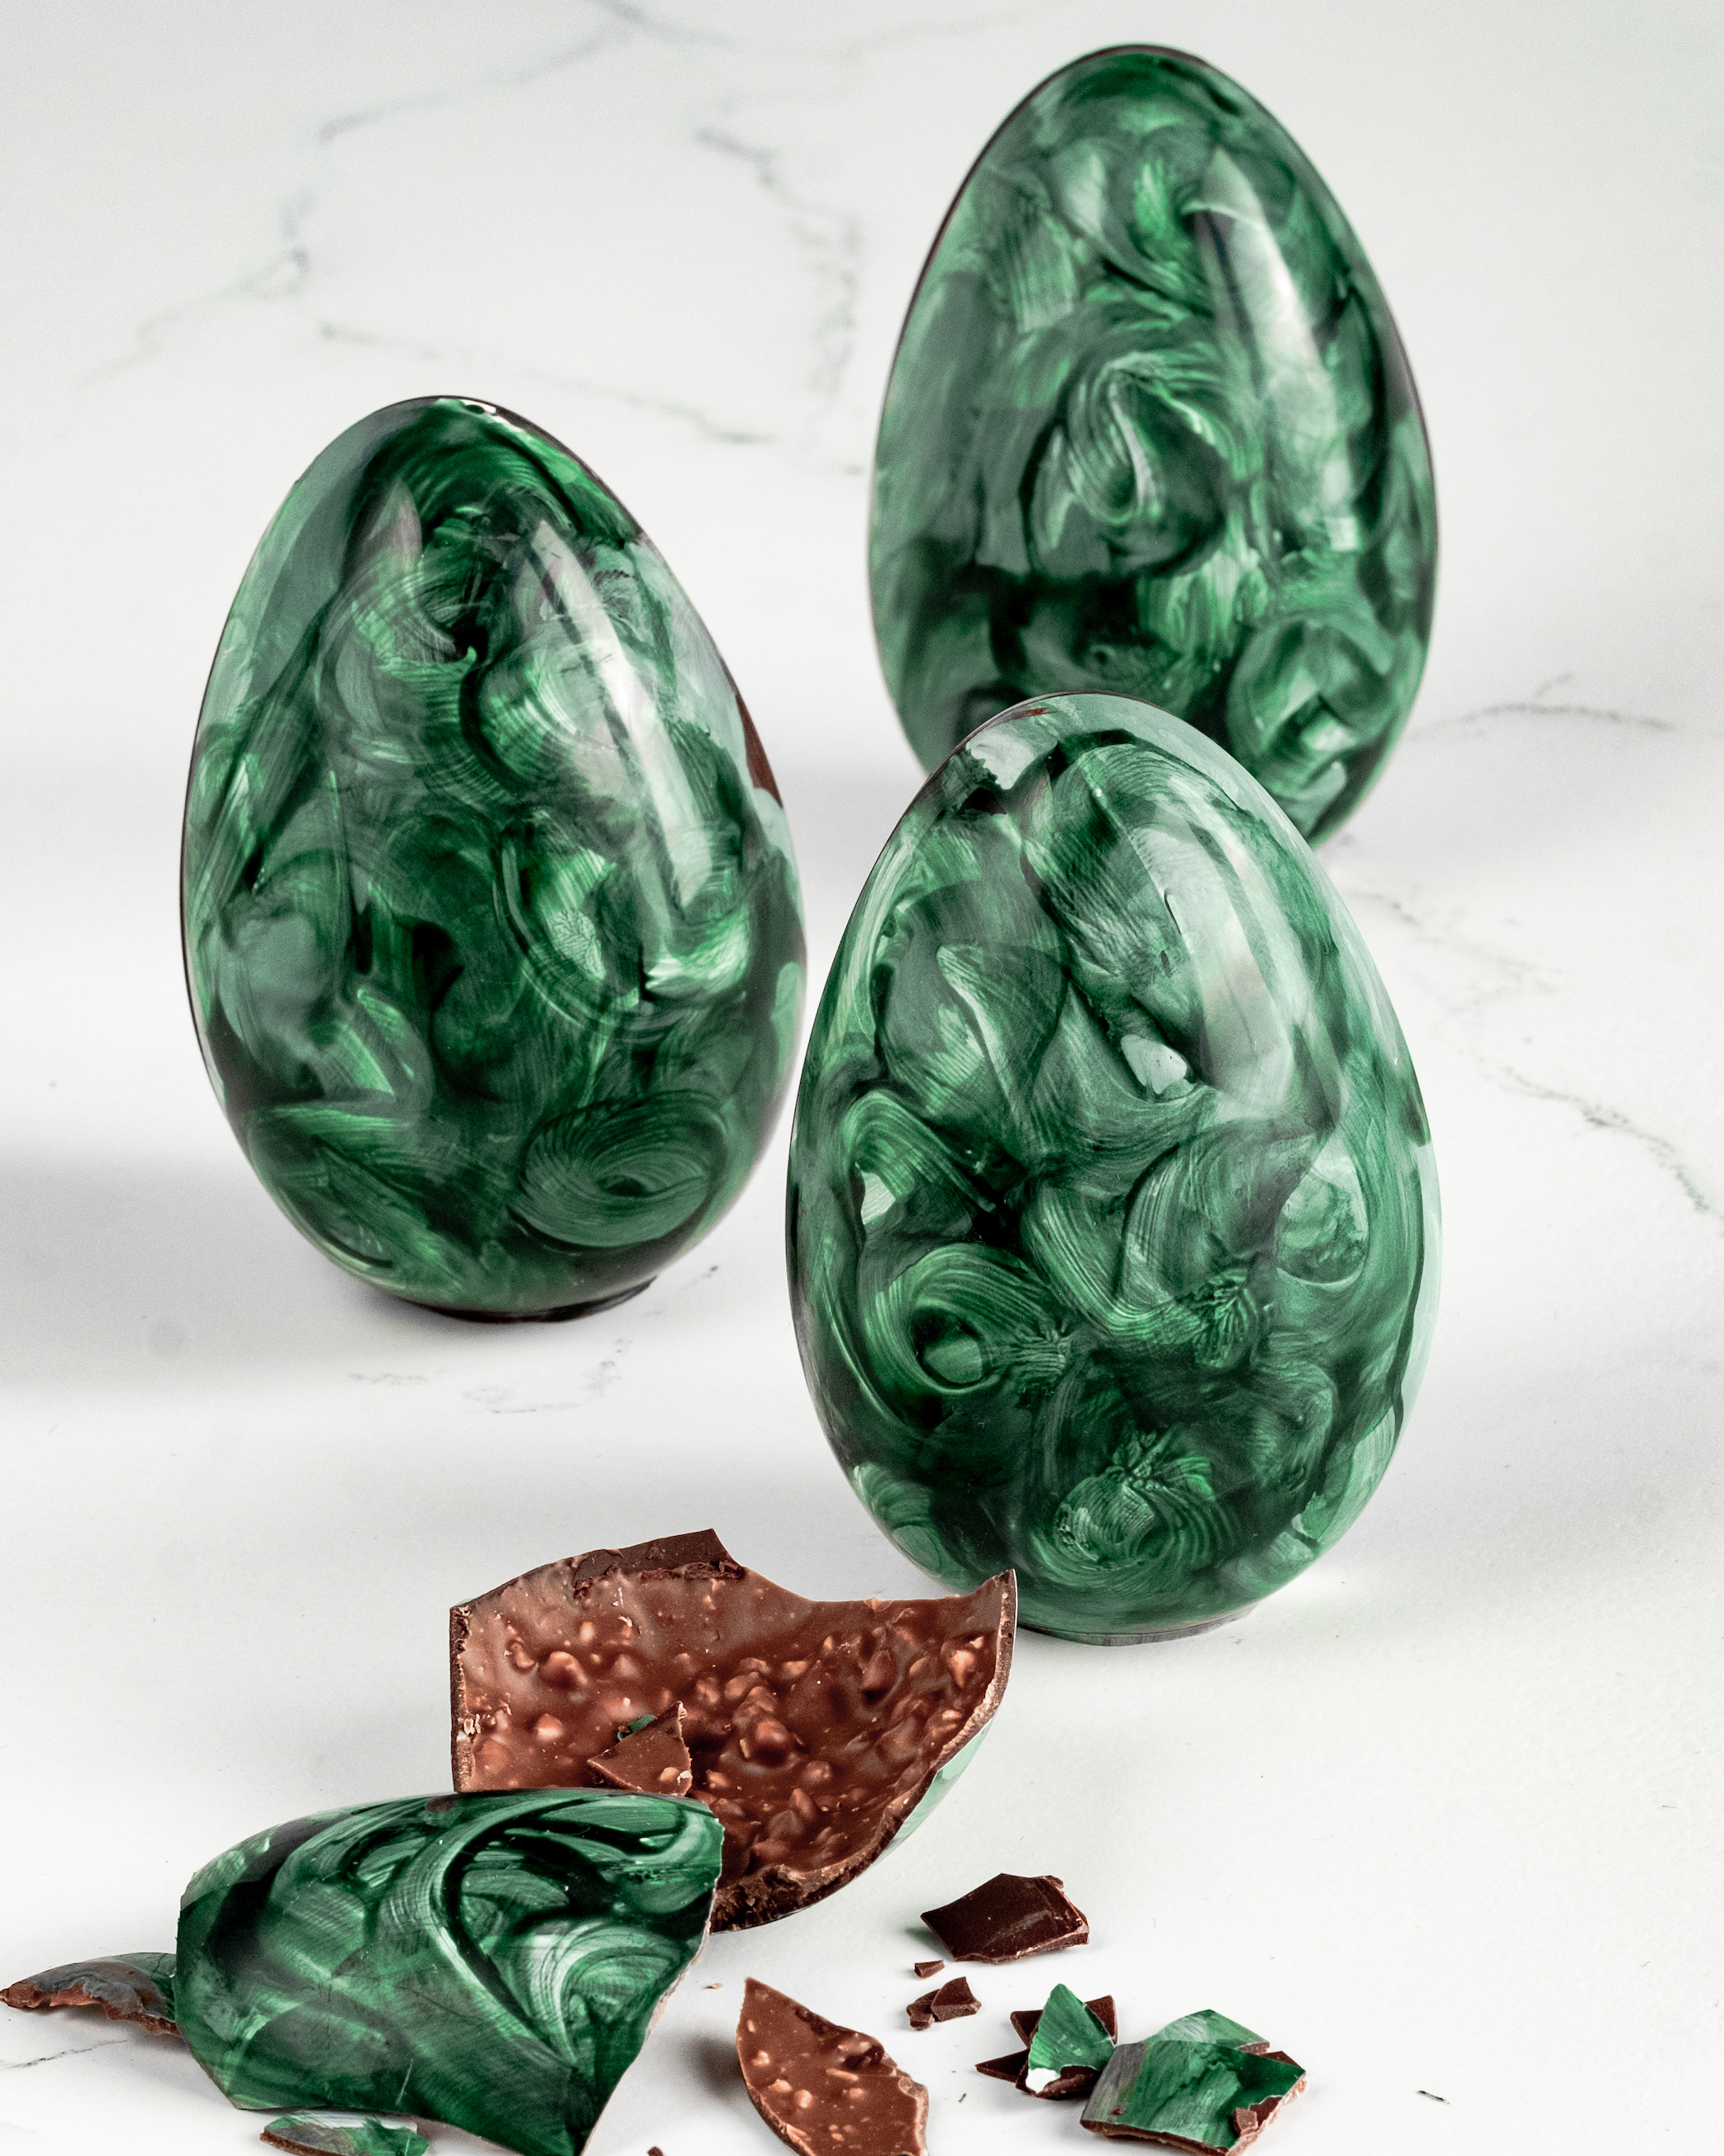 Raw chocolate mint crunch eggs on a white background